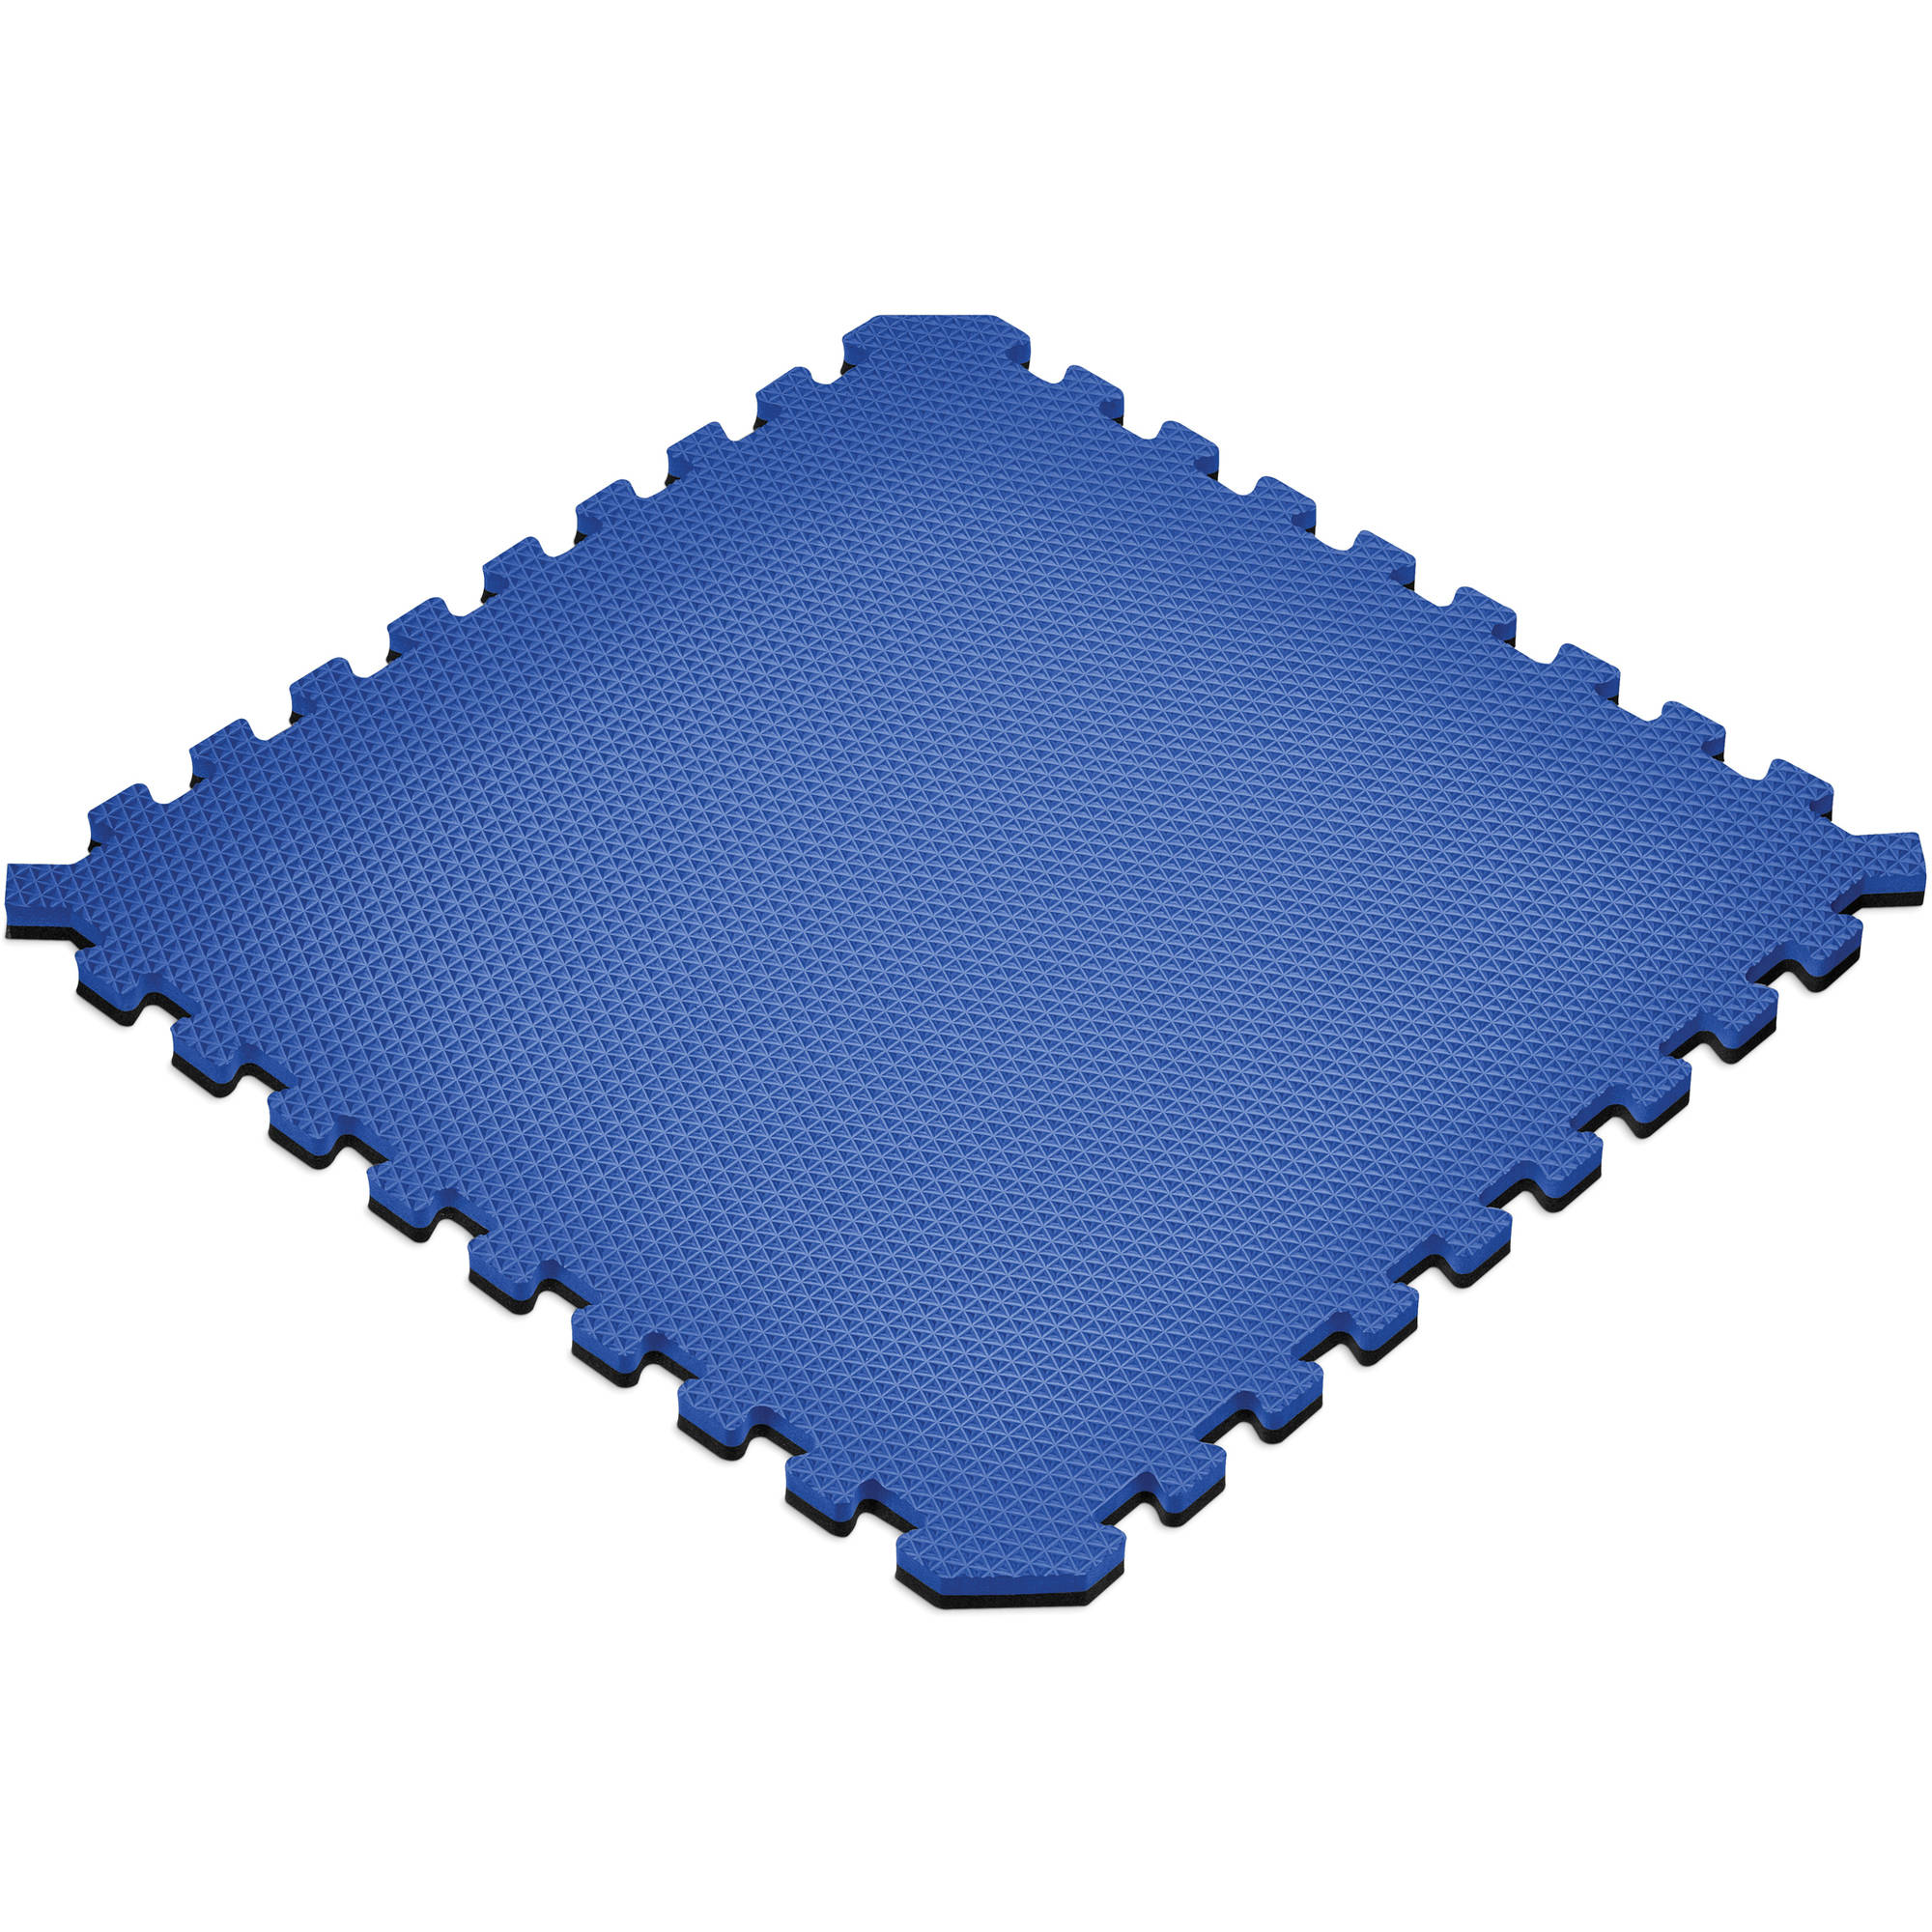 Norsk 16 sq ft Interlocking Foam Floor Mat, 4-Pack, Reversible Black/Blue